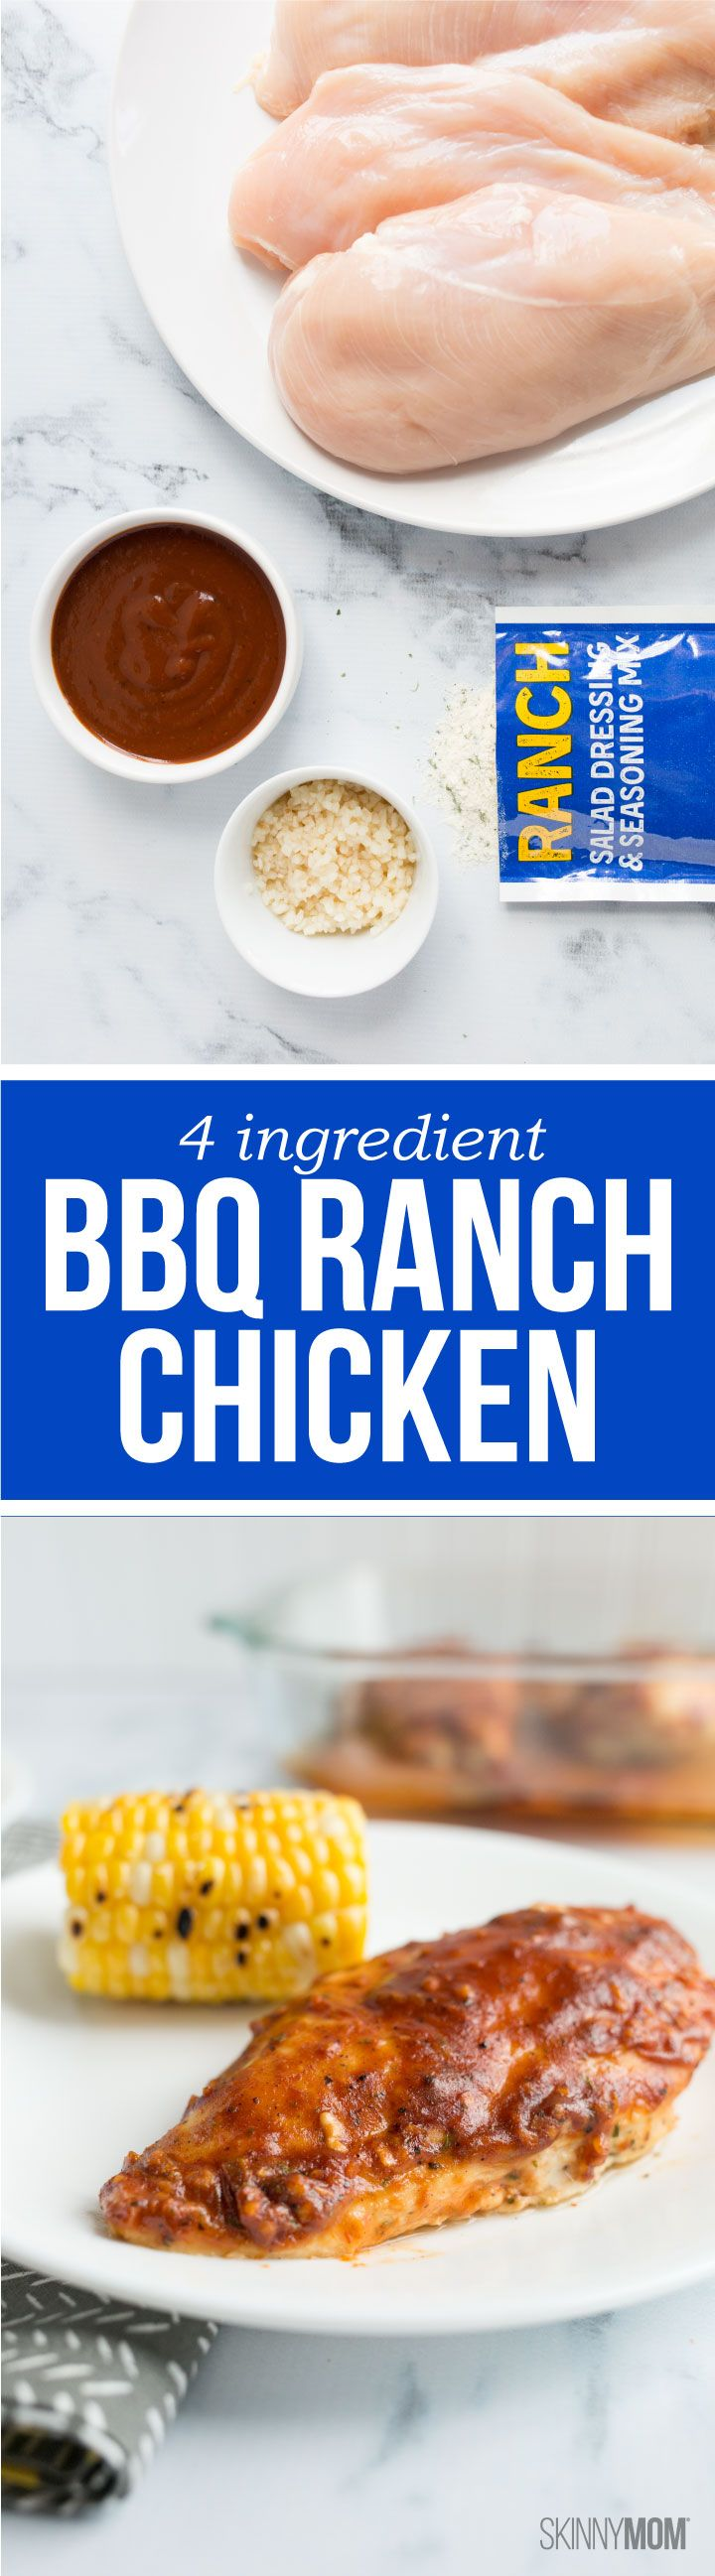 25+ best ideas about Baked ranch chicken on Pinterest ...